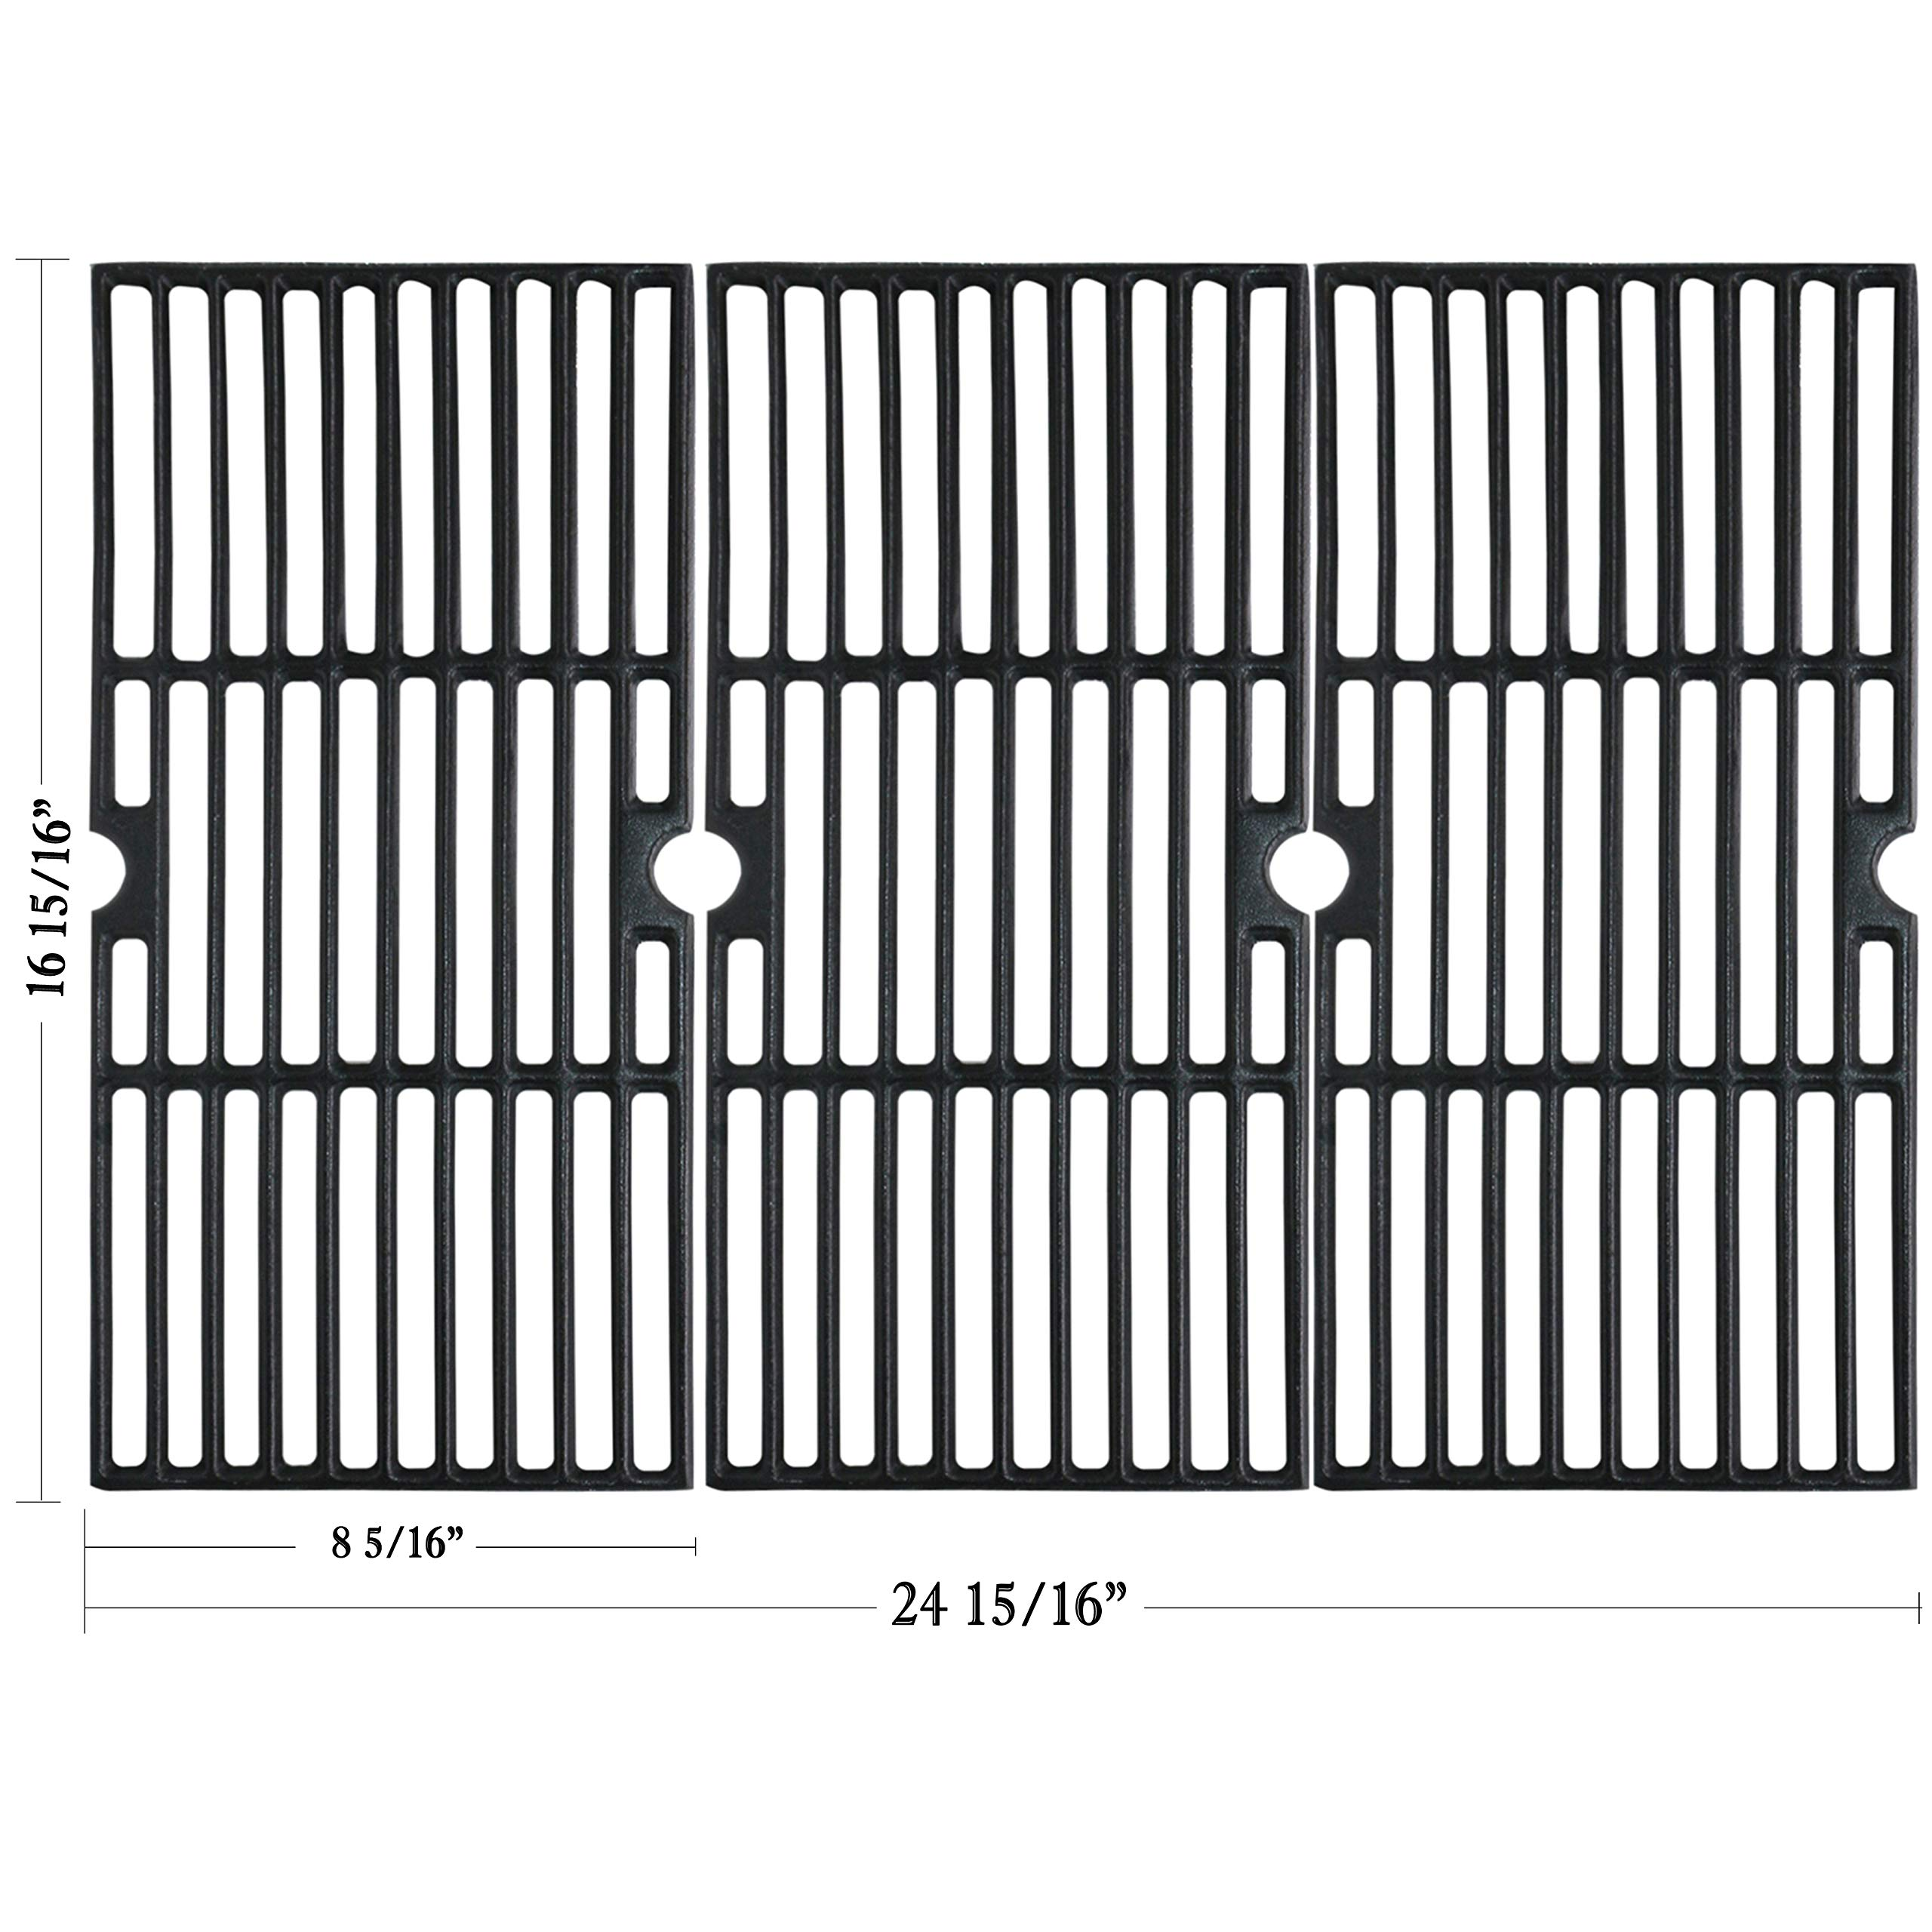 Hisencn Cast Iron Cooking Grid Grates Replacement for Charbroil Advantage 463343015, 463344015, 463344116, and Kenmore, Broil King Gas Grill Models, G467-0002-W1, 16 15/16'' by Hisencn